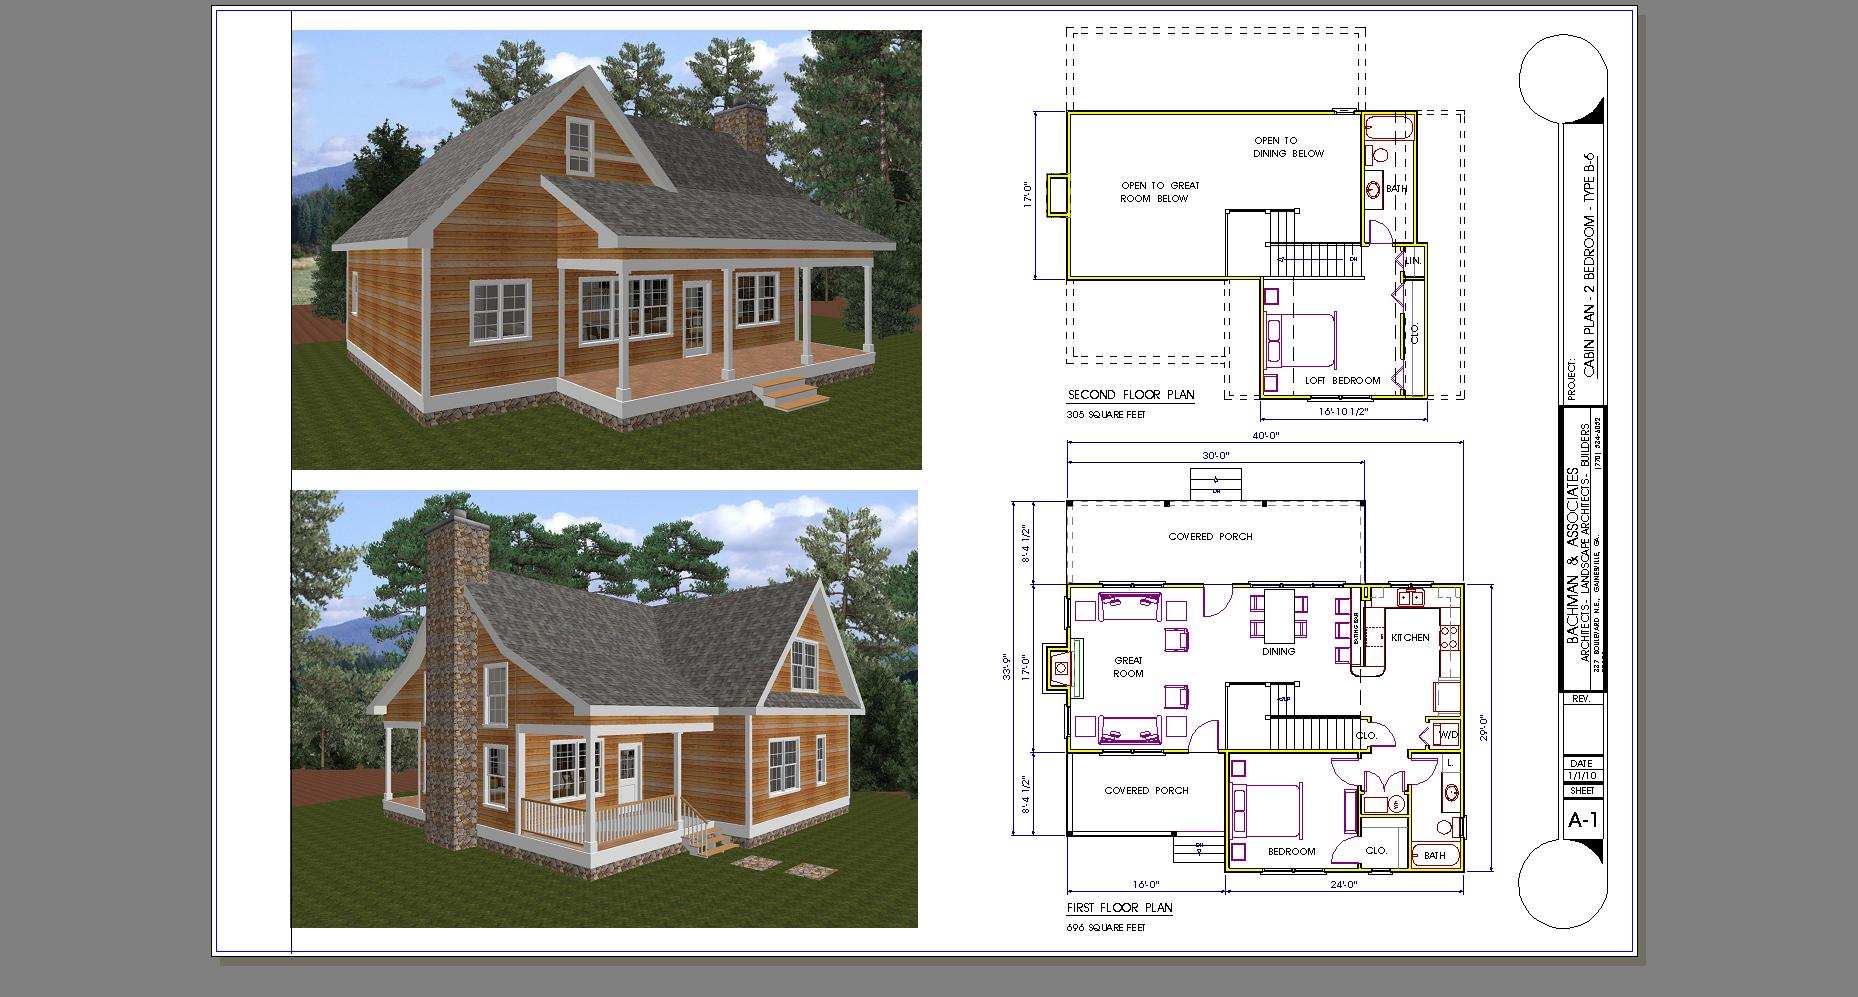 Small 2 bedroom cabin plans bellows afb 1 bedroom cabins for One bedroom cabins to build